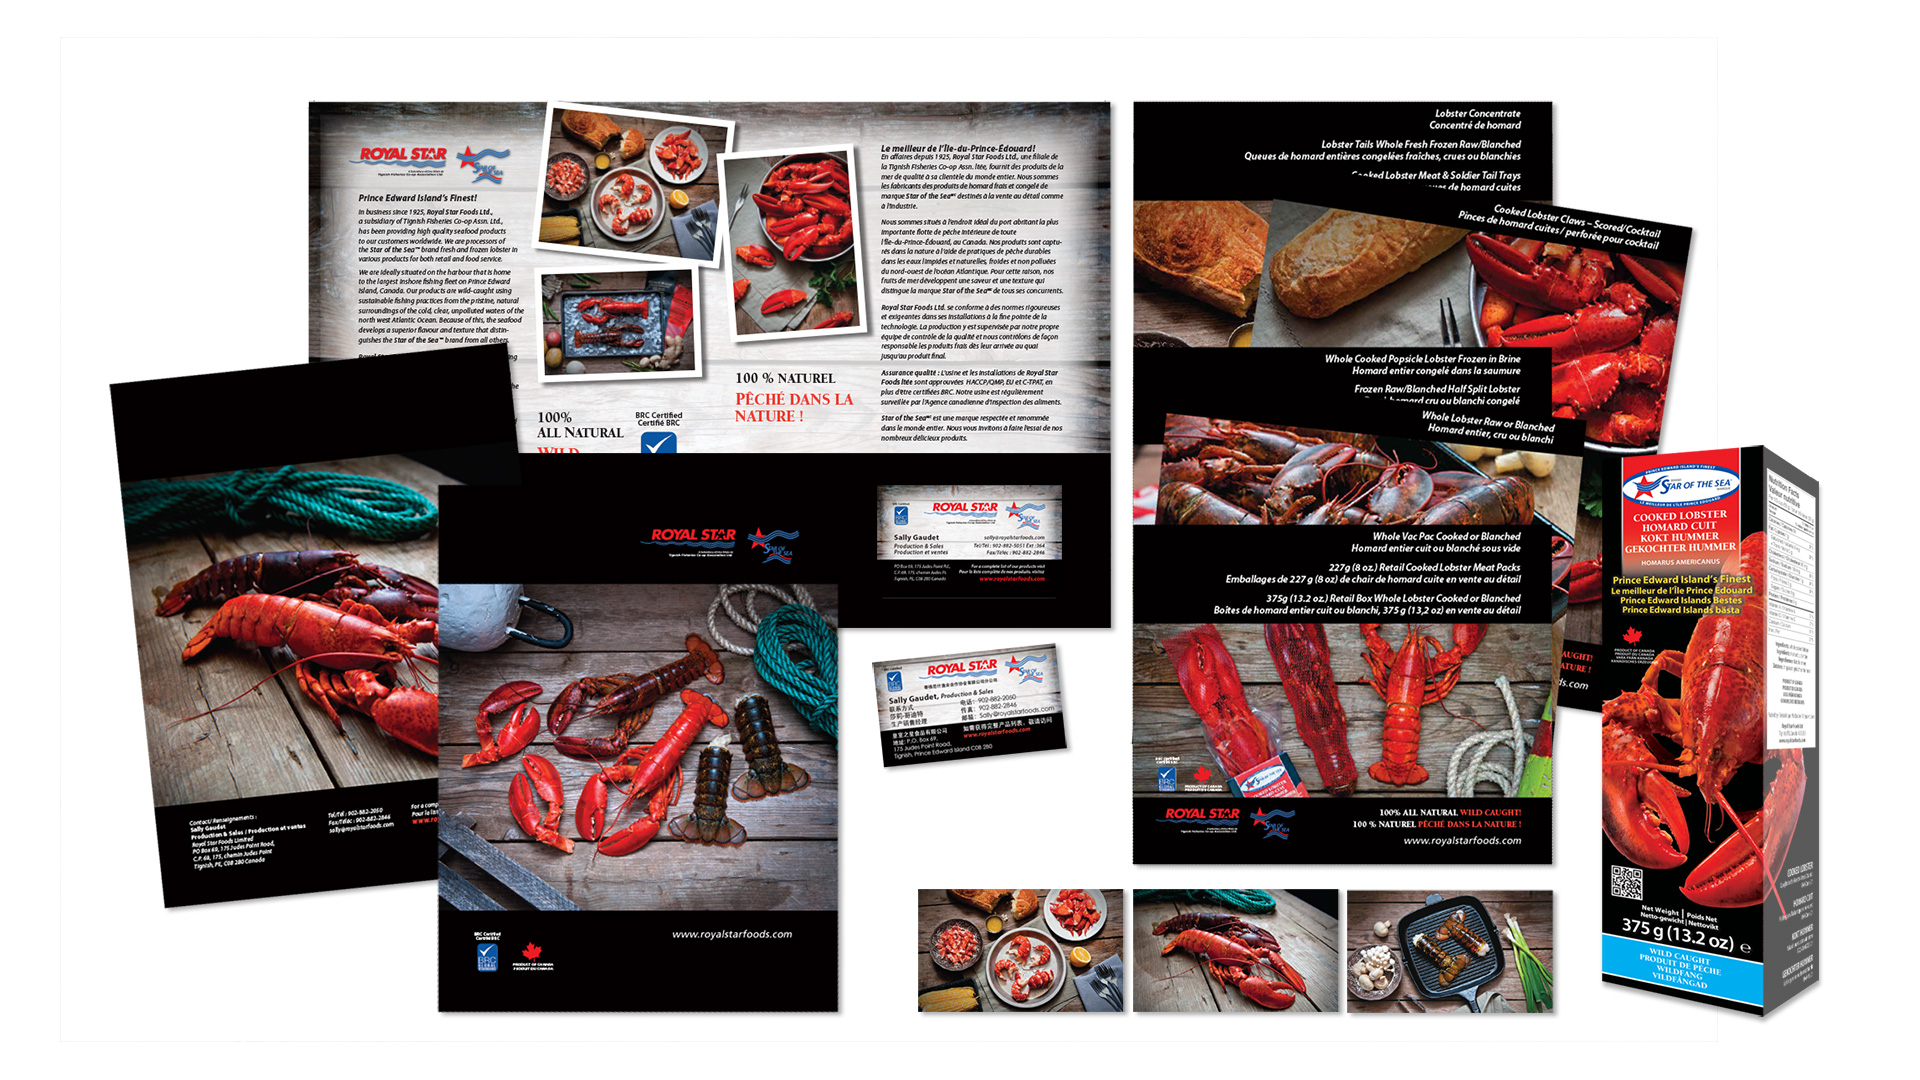 Royal Star Foods Marketing Collateral